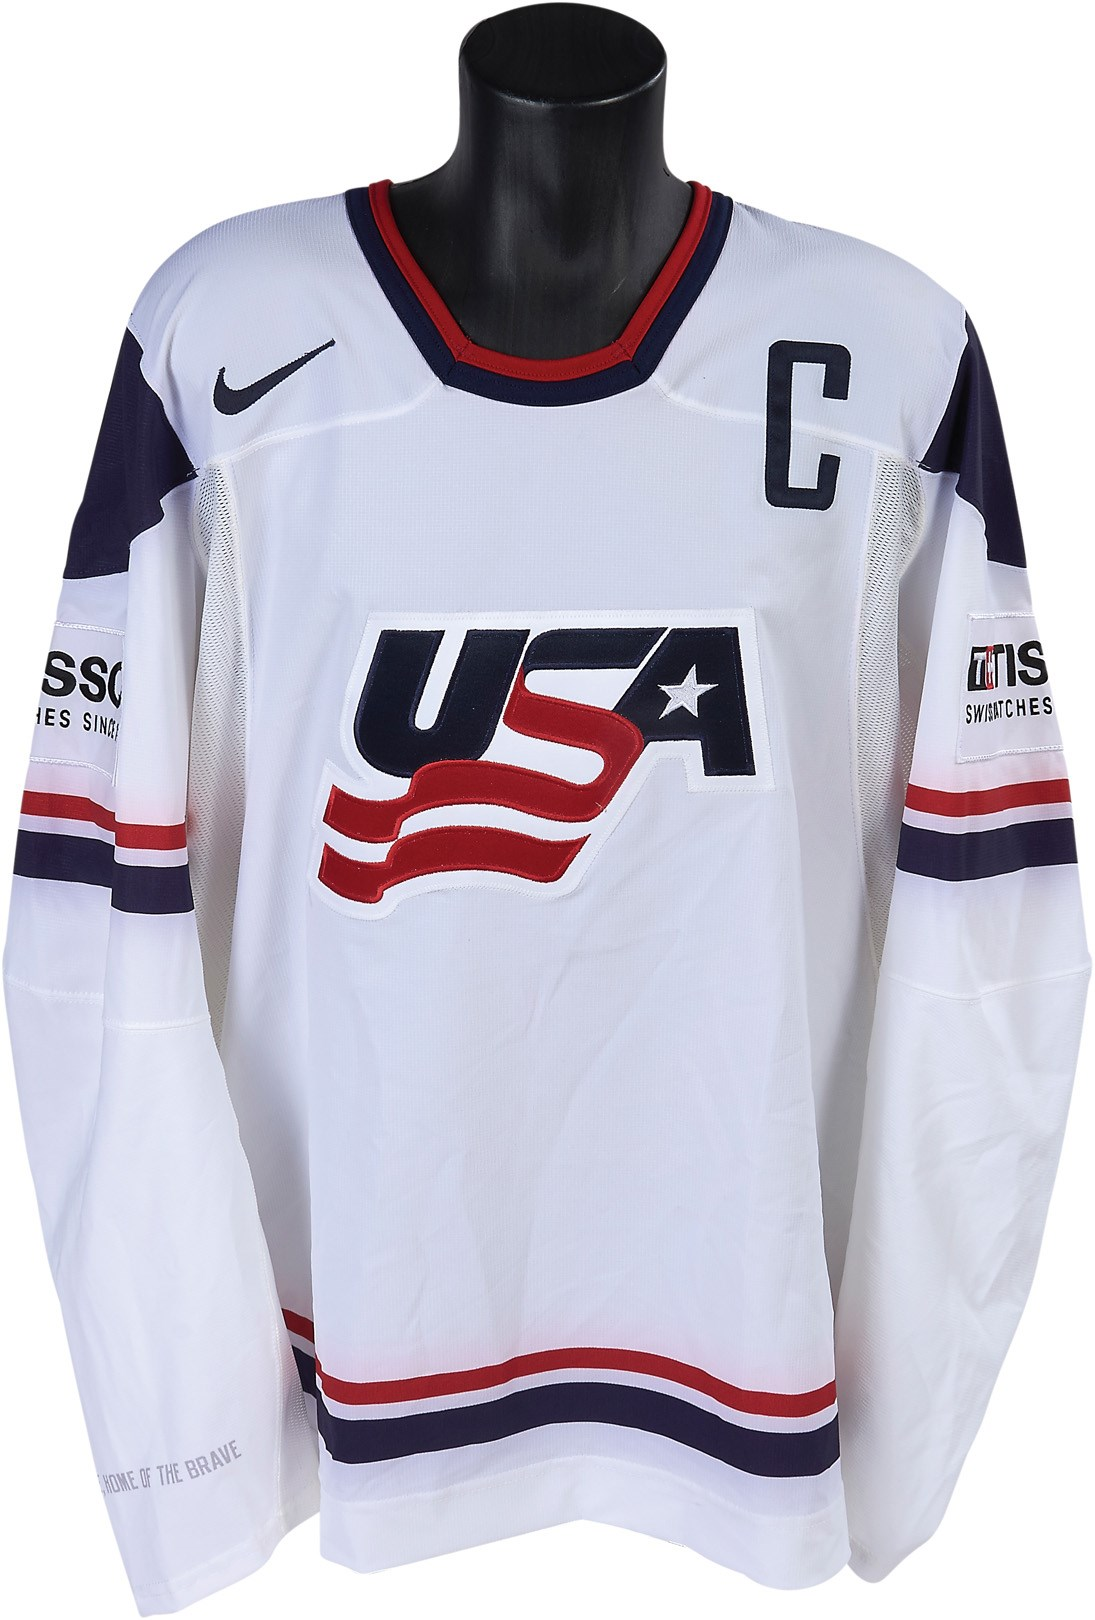 2010 Jack Johnson Ice Hockey World Championships Game Worn Jersey